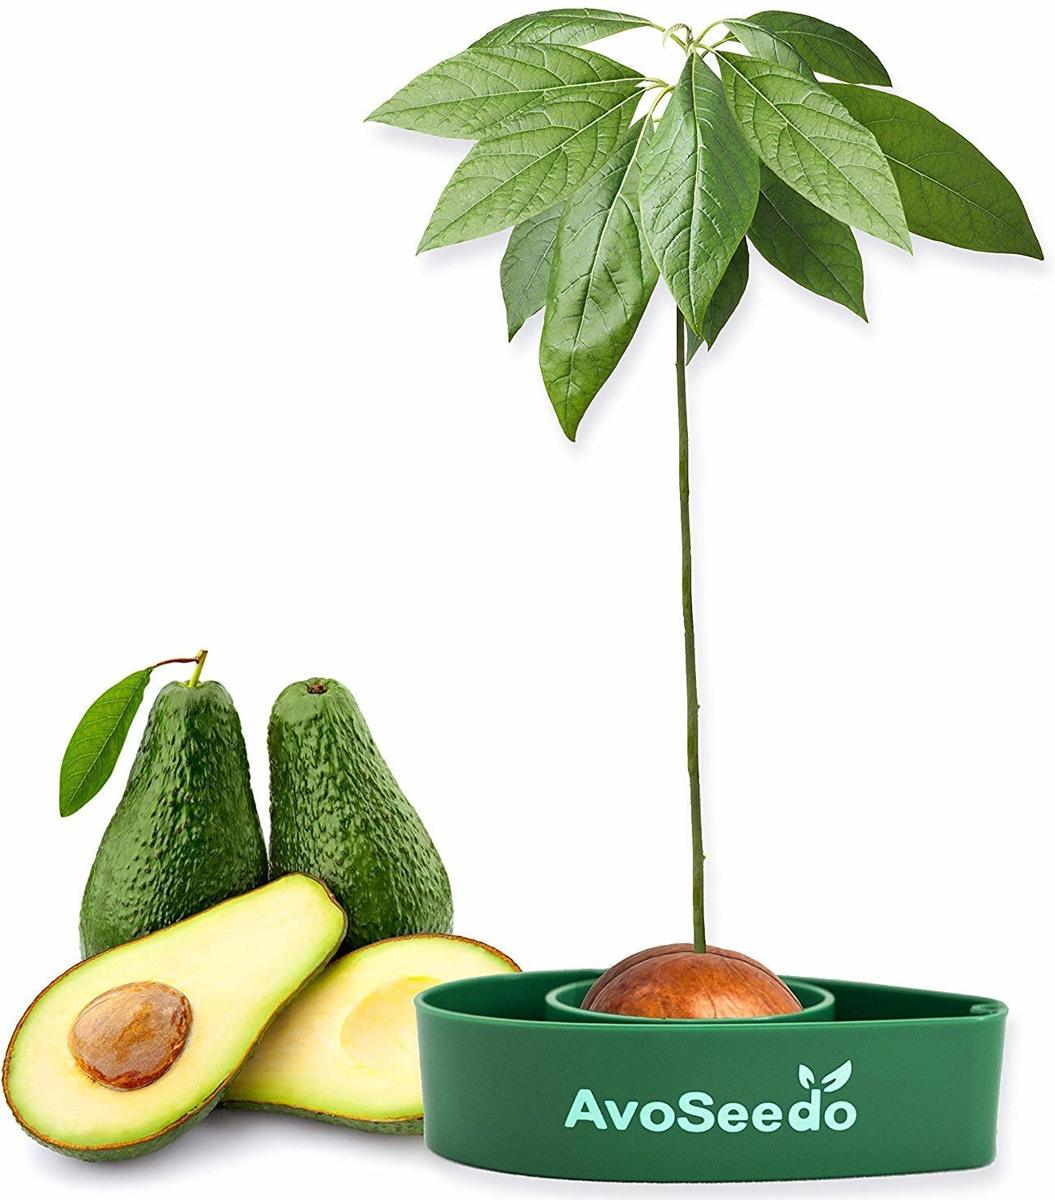 AvoSeedo - Avocado Boom - Kweek Kit - Praktische Tuinier Cadeau - Avocado Lovers